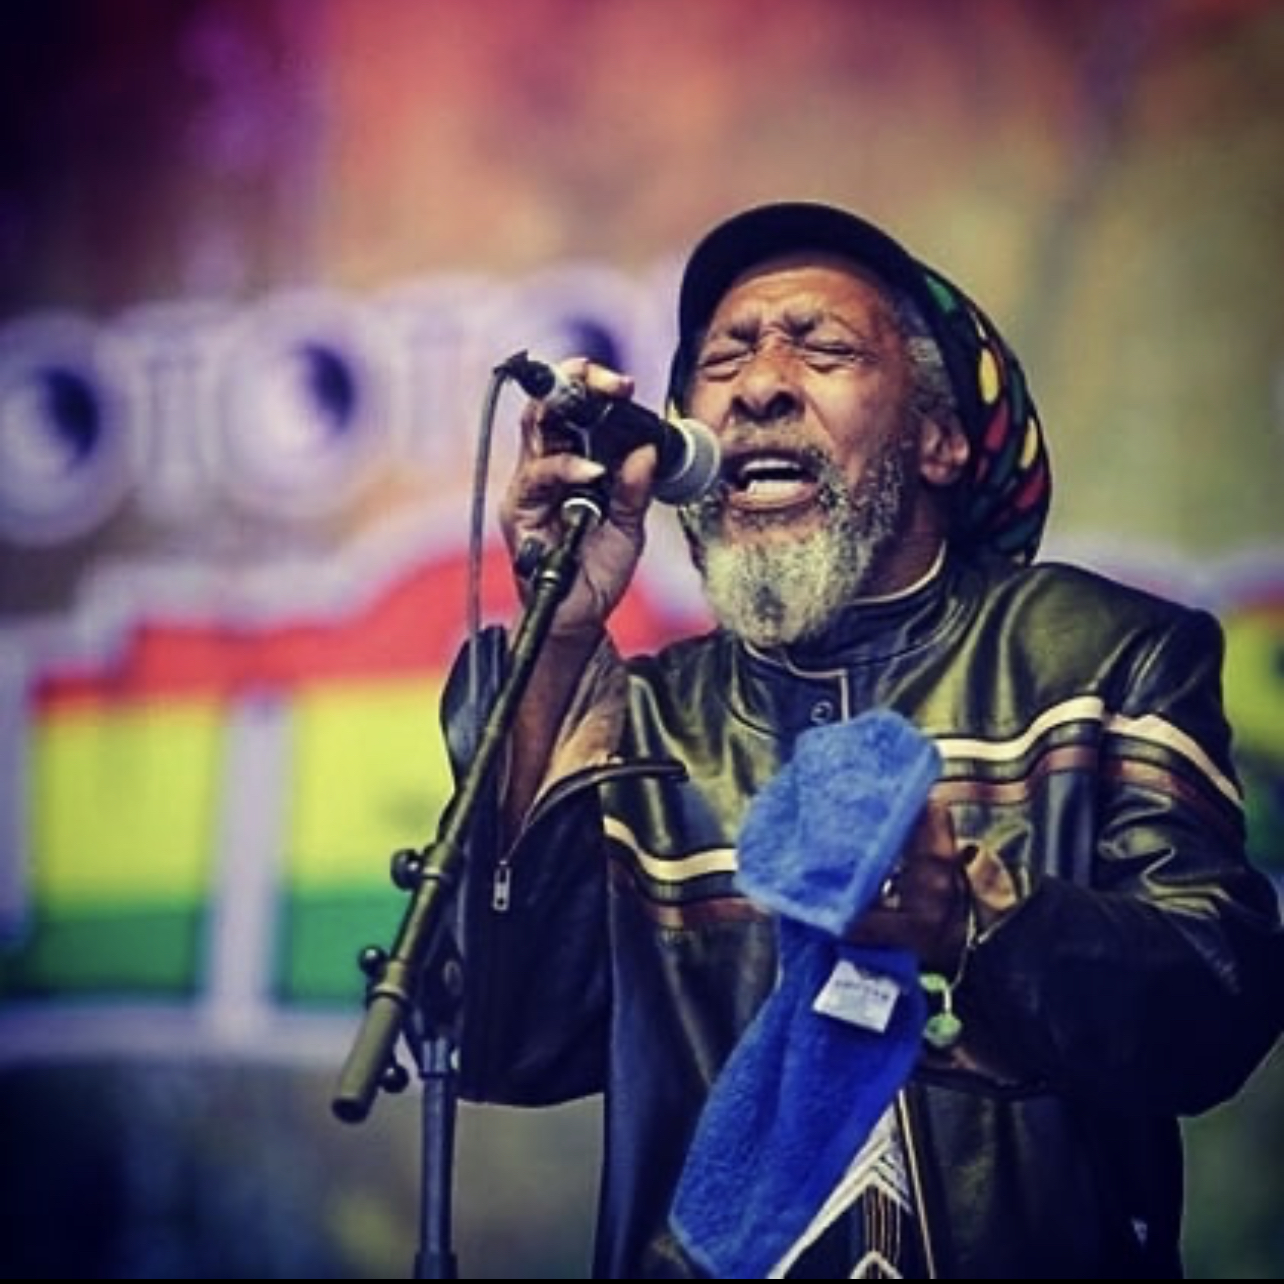 IJAHMAN LEVI NEEDS PRAYERS AS 75 YEAR-OLD MUSICIAN CONTRACTS COVID